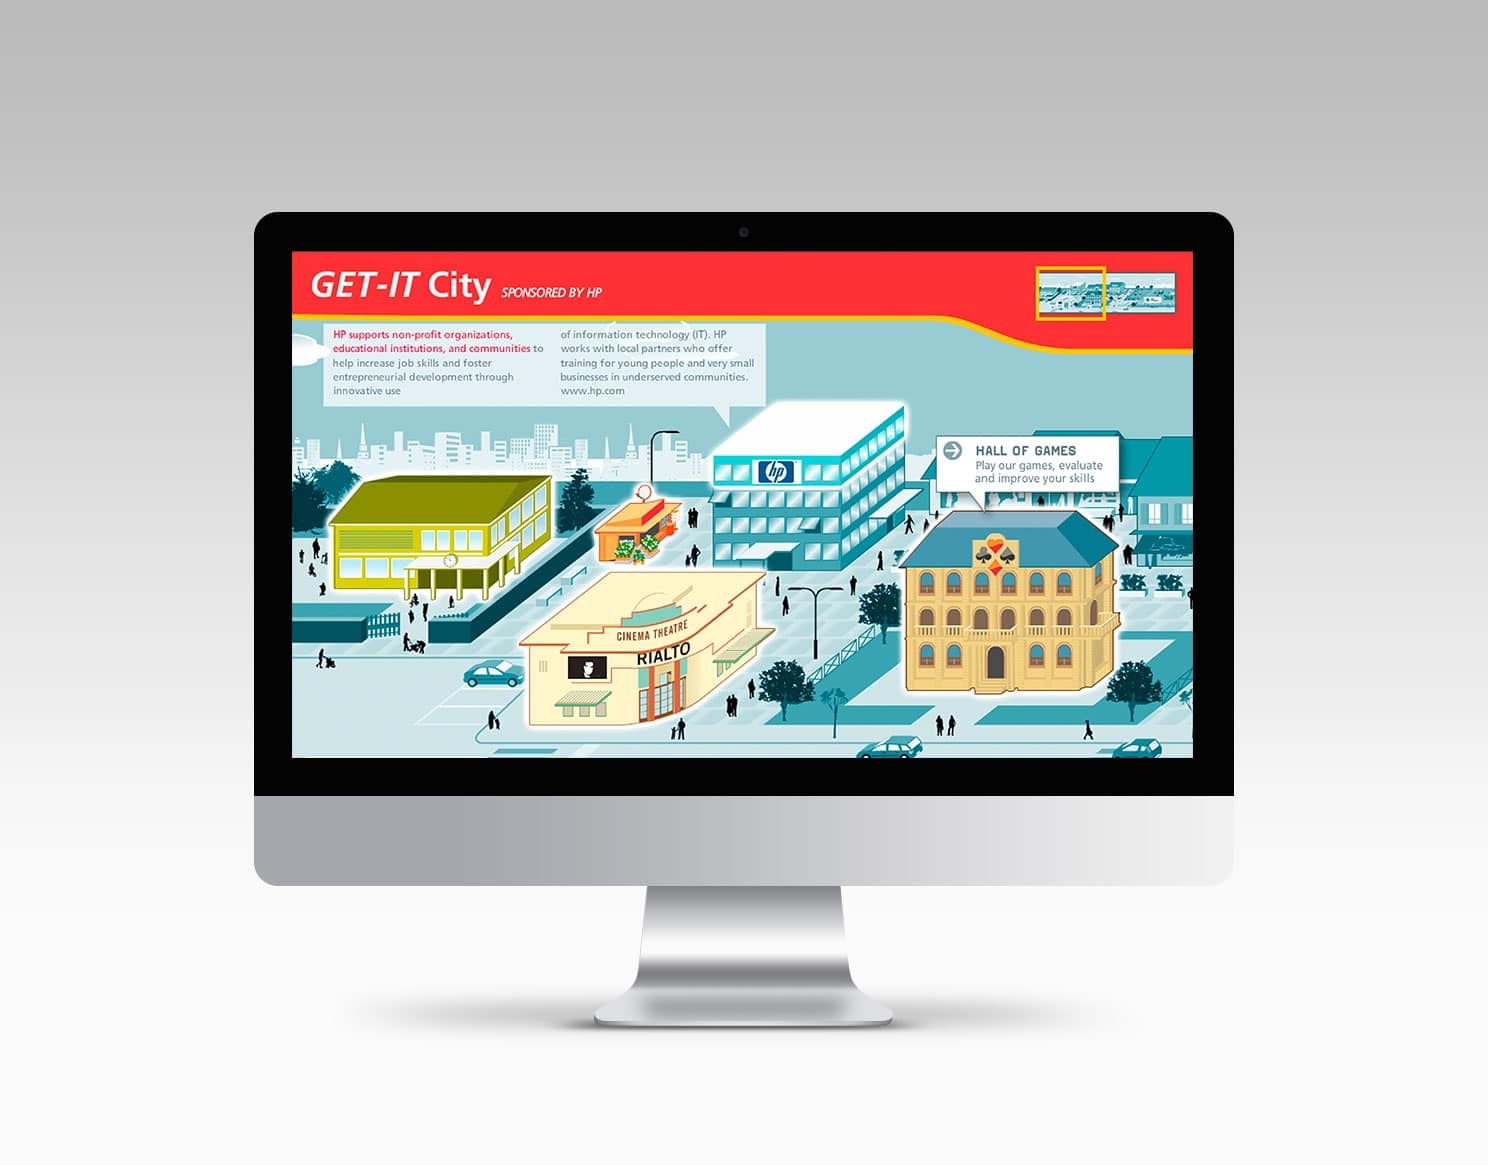 Site internet GET-IT City - Hewlett packard @ Haymoz design, graphiste Lausanne